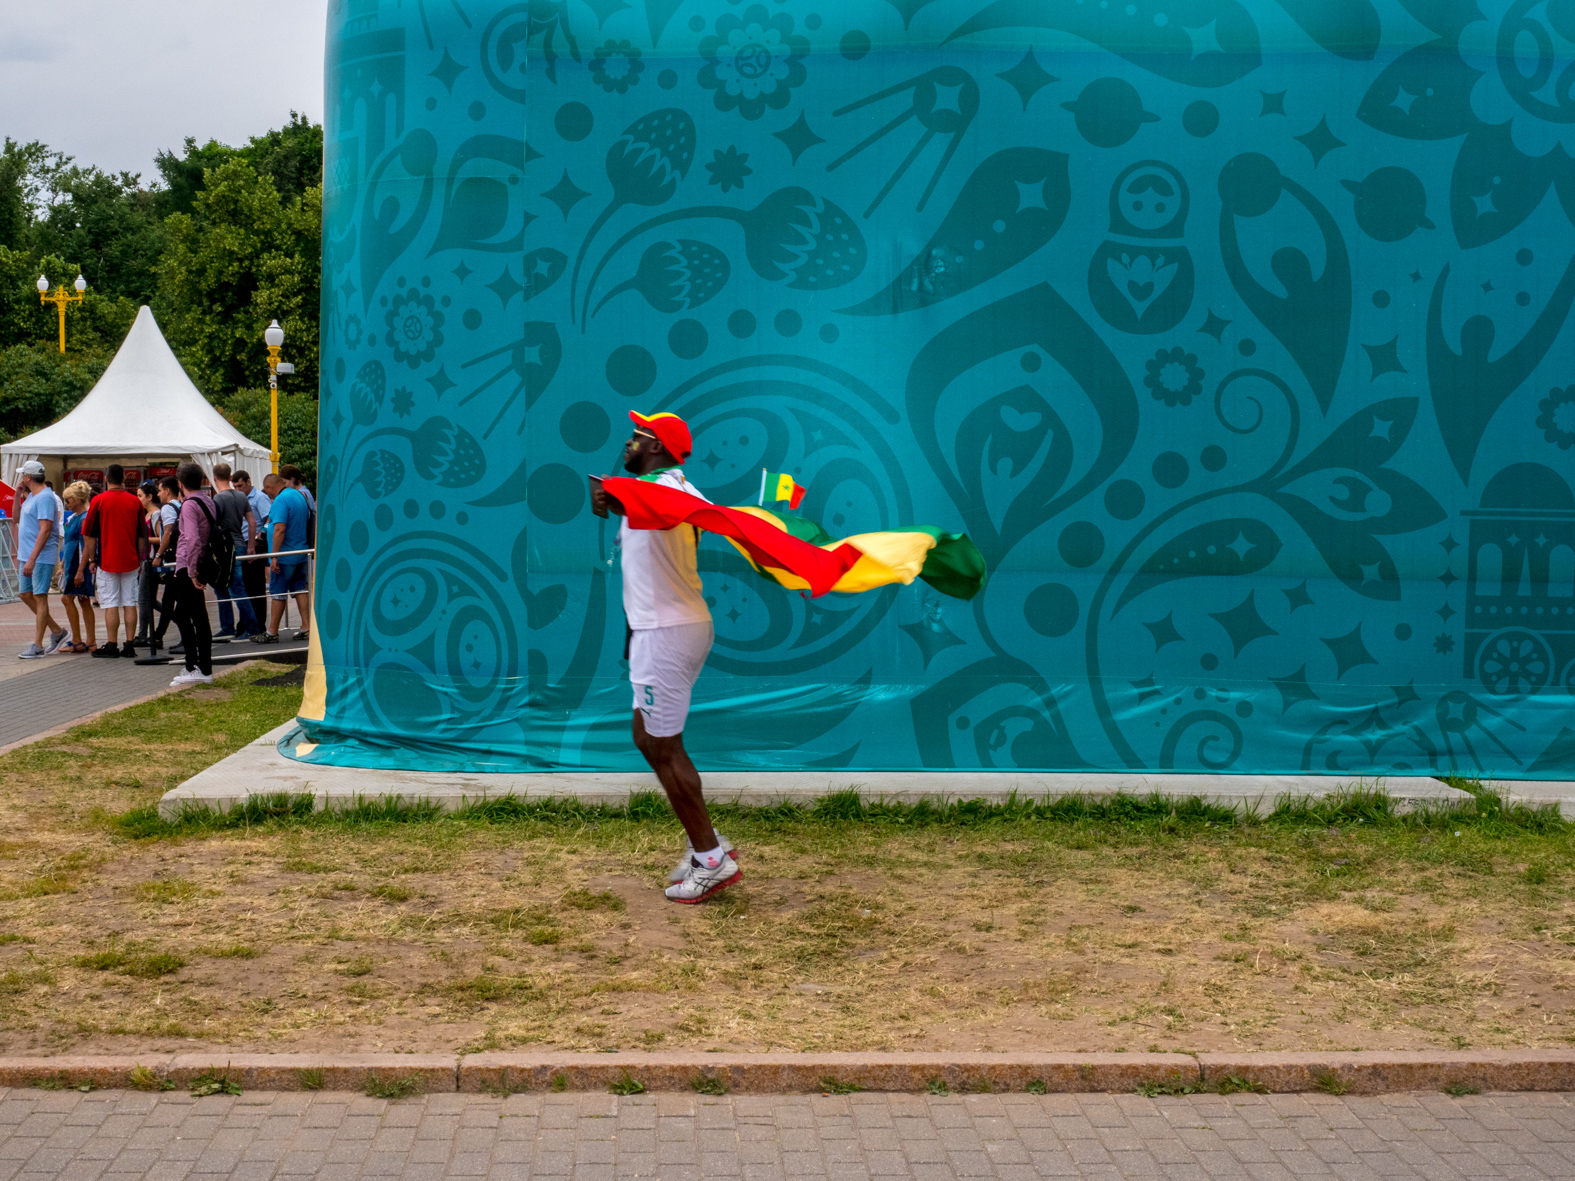 A Senegal football fan arrives at the Moscow FIFA Fan Fest located at Vorobyovy Gory (Sparrow Hills) with a venue Capacity of 25,000. The site provides a spectacular view down the hill, directly towards Luzhniki Stadium and Moscow City. The 21st FIFA World Cup football tournament took place in Russia in 2018. It was the first World Cup to be held in Eastern Europe and the eleventh time that it has been held in Europe. For the first time the tournament took place on two continents – Europe and Asia. All but two of the stadium venues were in European Russia.